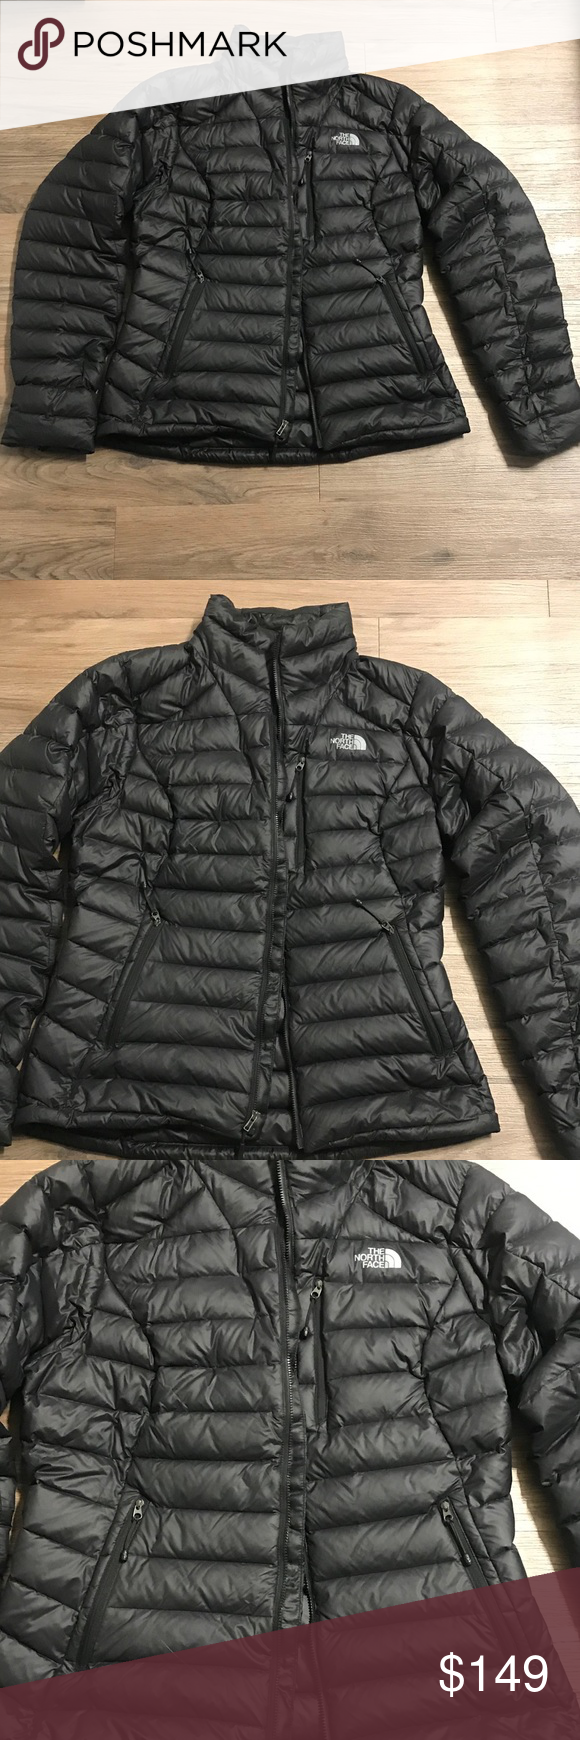 The North Face Morph Jacket Insulated 800 Fill Down Jacket With Three Zip Pocket Jackets Down Jacket Winter Coat Warmest [ 1740 x 580 Pixel ]